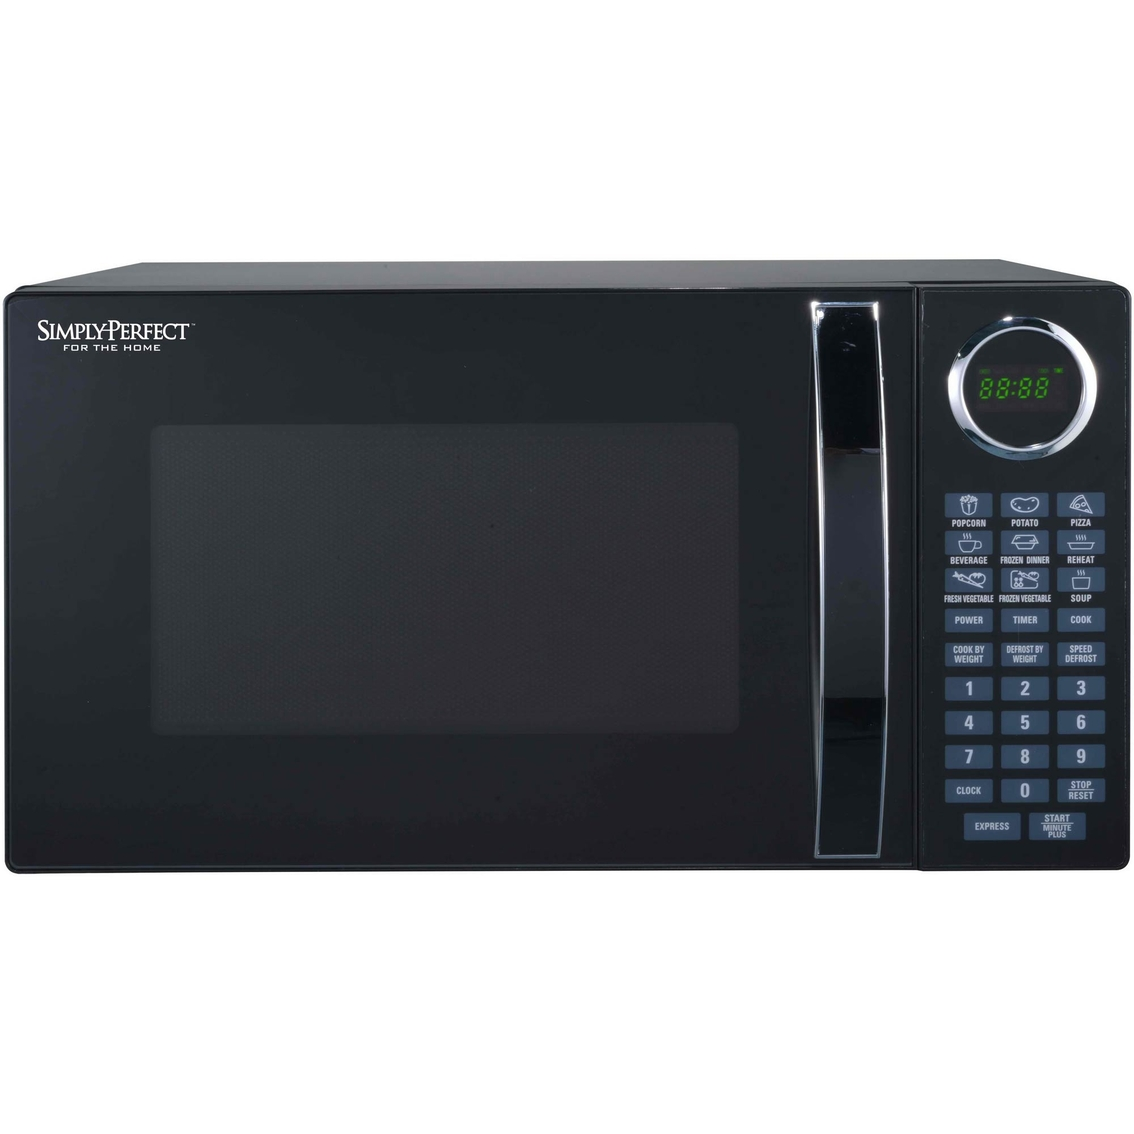 0 9 Cu Ft 900w Microwave Oven